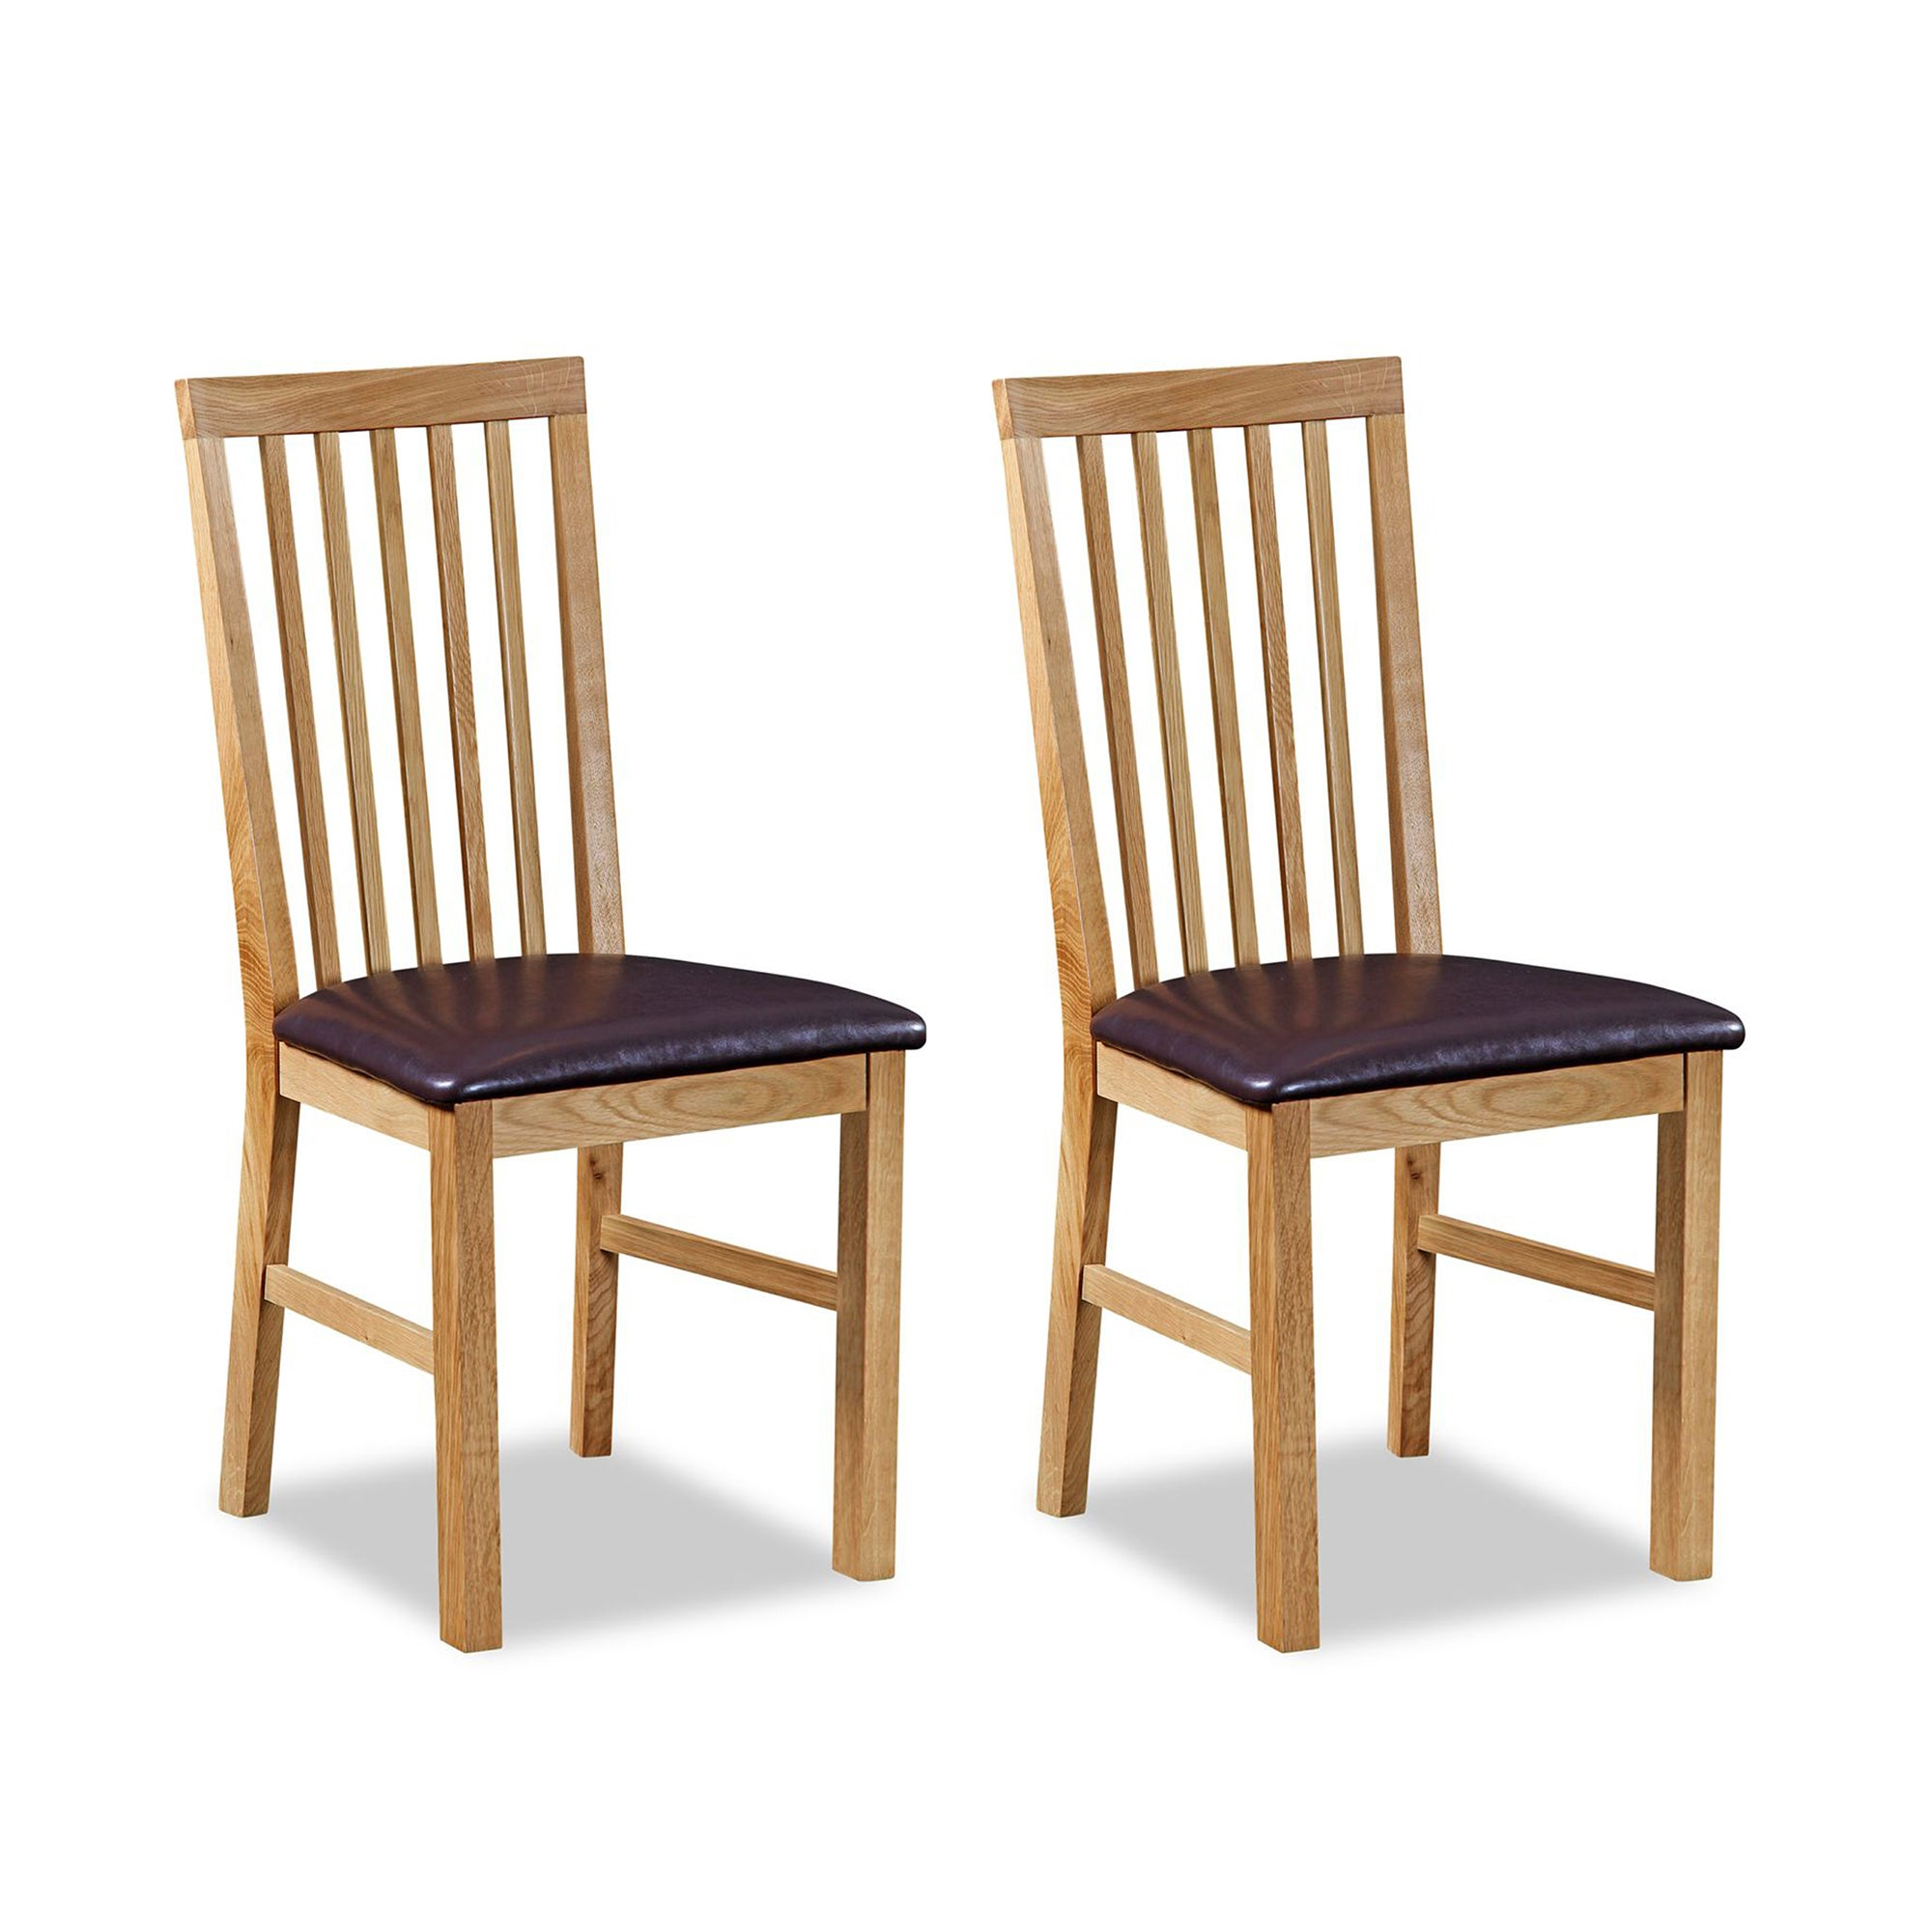 hampshire oak pair of dining chairs dunelm. Black Bedroom Furniture Sets. Home Design Ideas